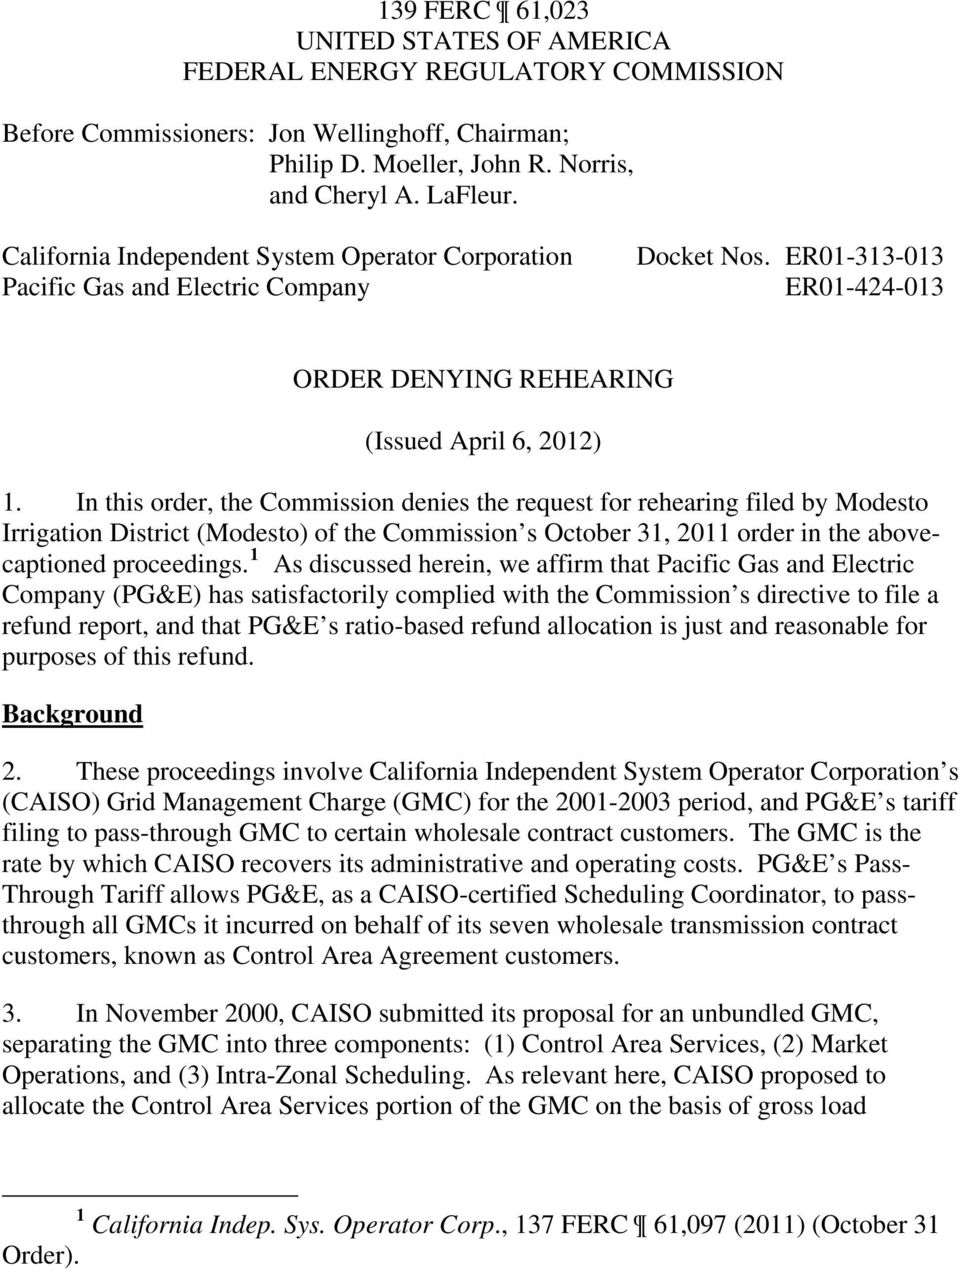 In this order, the Commission denies the request for rehearing filed by Modesto Irrigation District (Modesto) of the Commission s October 31, 2011 order in the abovecaptioned proceedings.